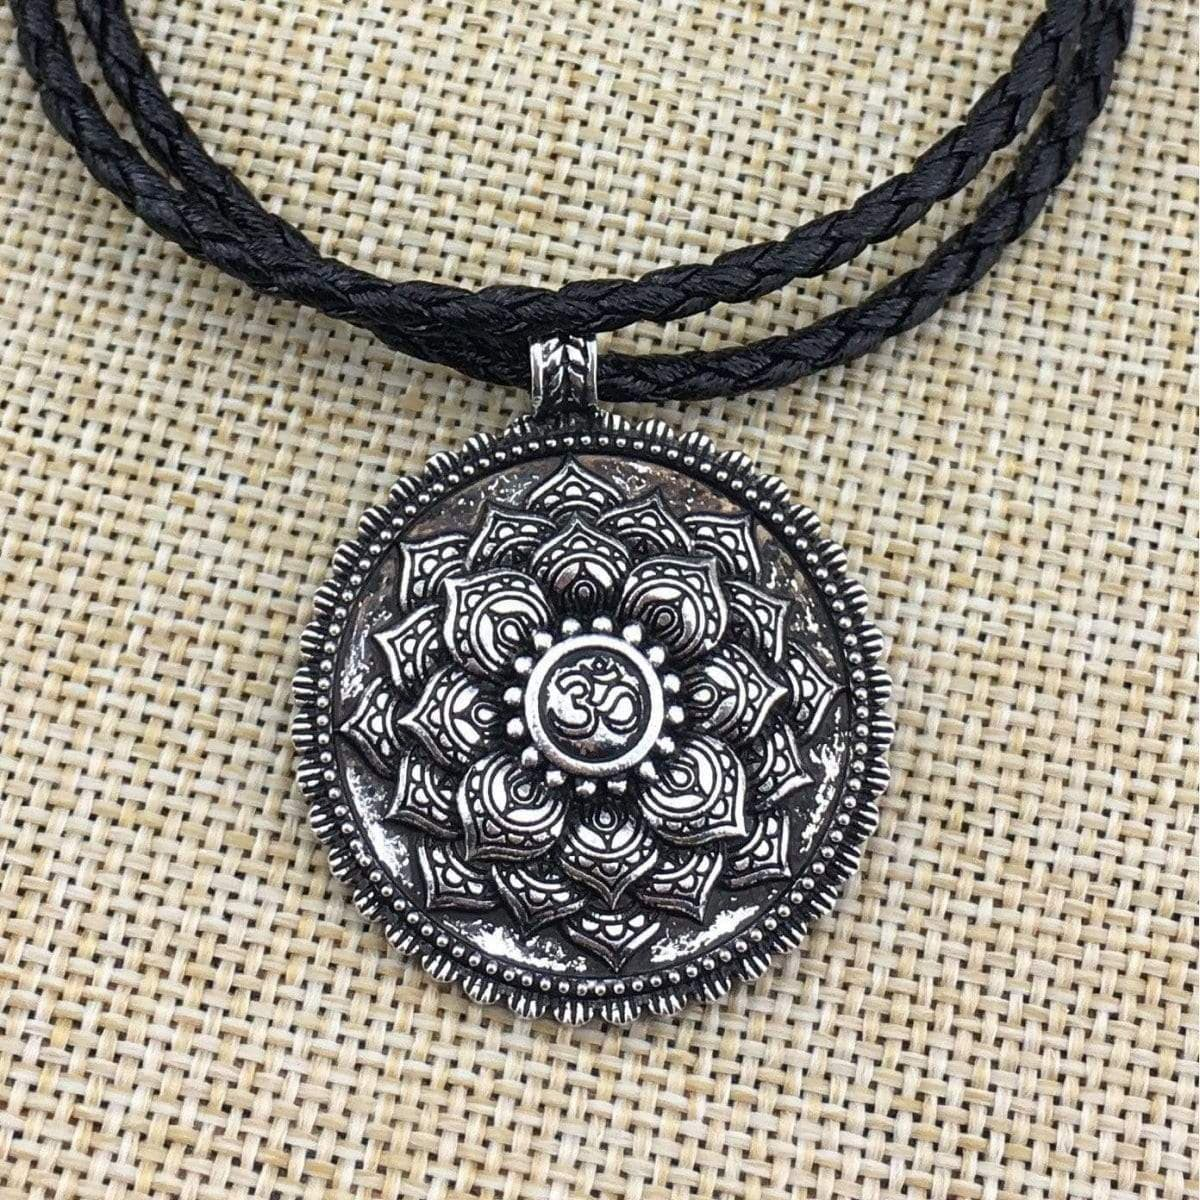 Antique Silver Om Lotus Mandala Pendant Necklace - Prana Heart: Everyday Mindfulness